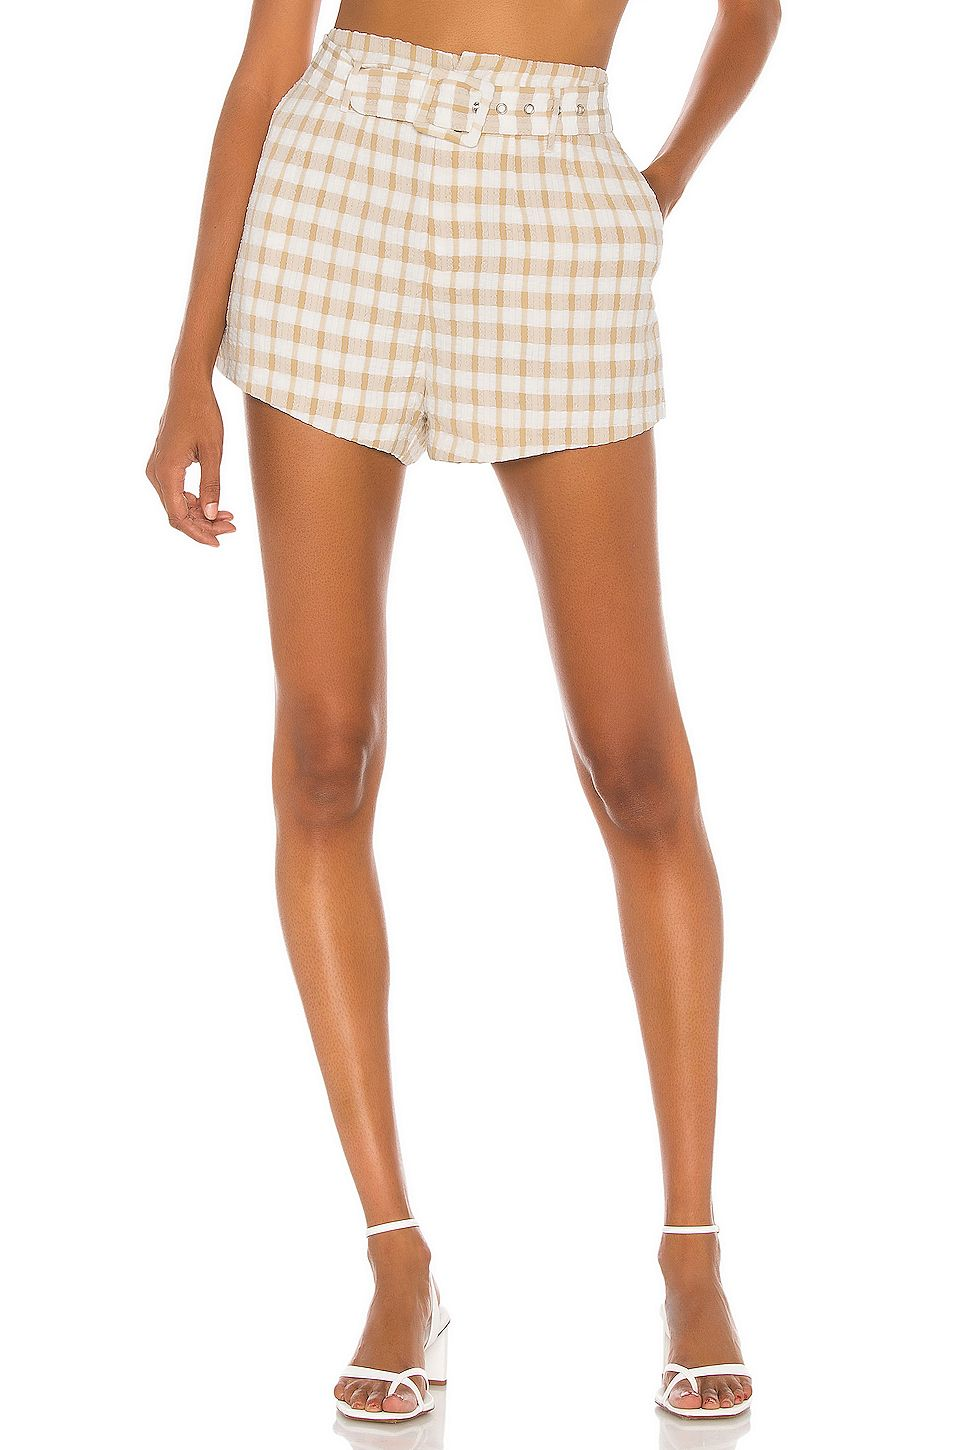 Silvio Short by Camila-Coelho, available on revolve.com for $148 Camila Coelho Shorts Exact Product